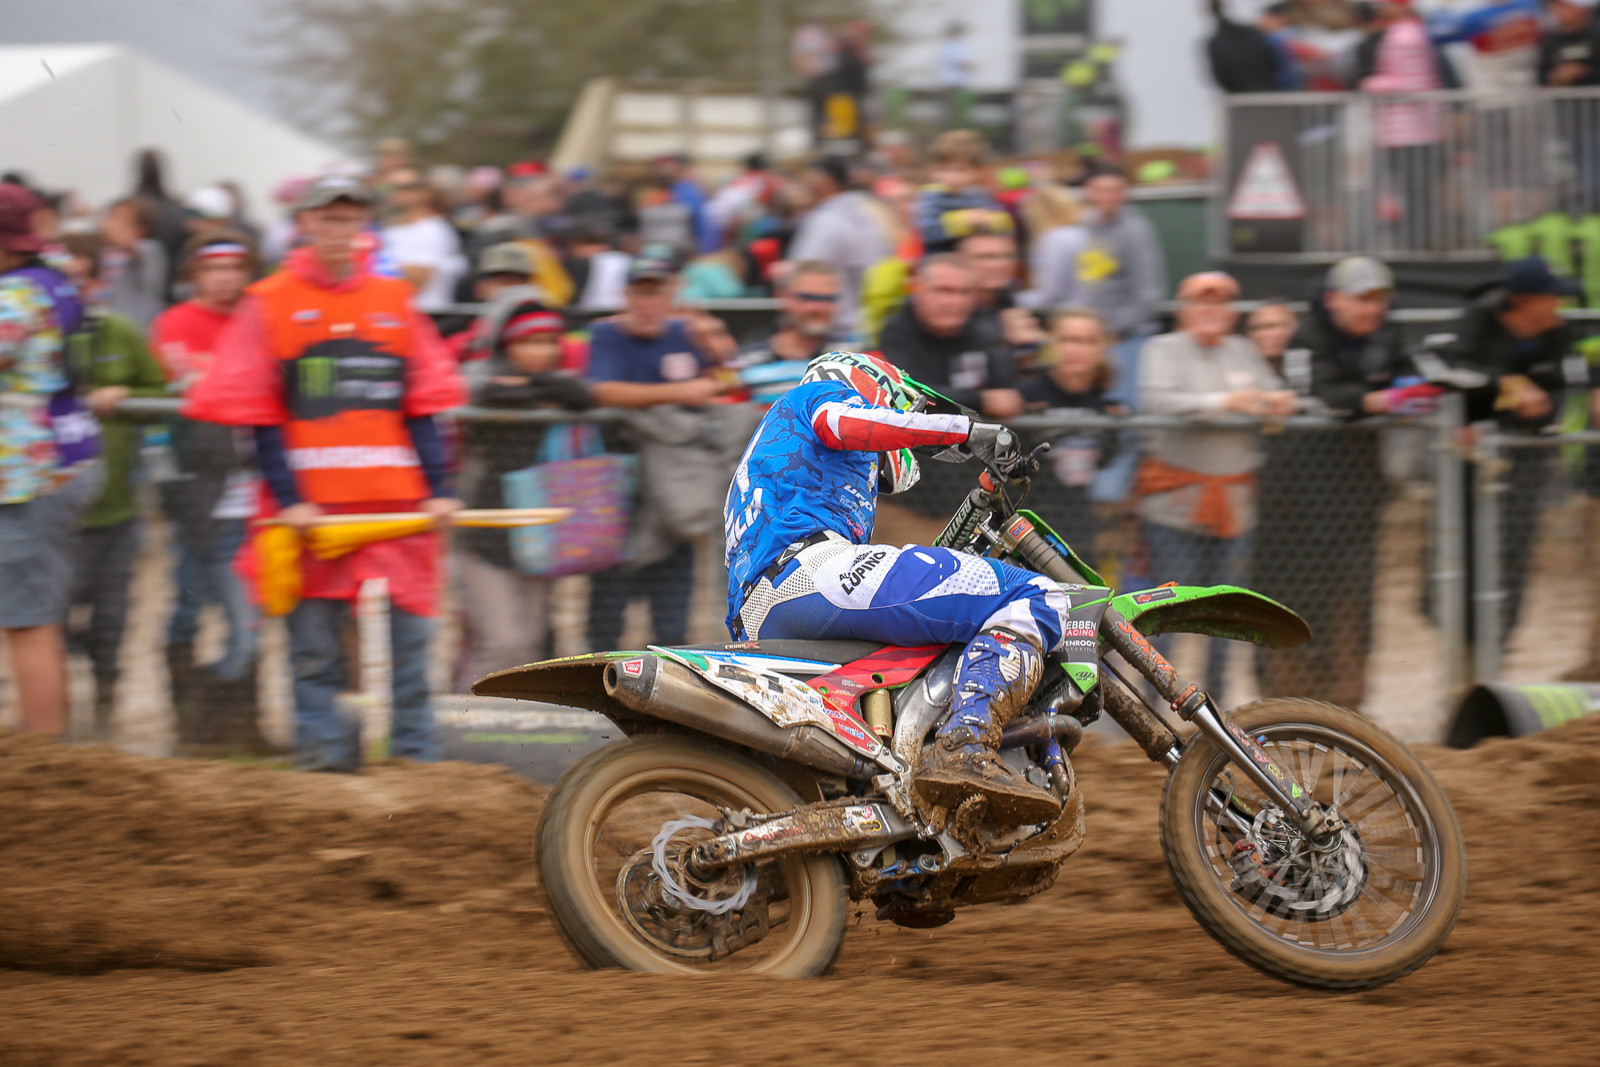 Alessandro Lupino was fifth among all the riders in the final moto, finishing behind his Italian teammate, Antonio Cairoli, and helping propel them to a podium finish.